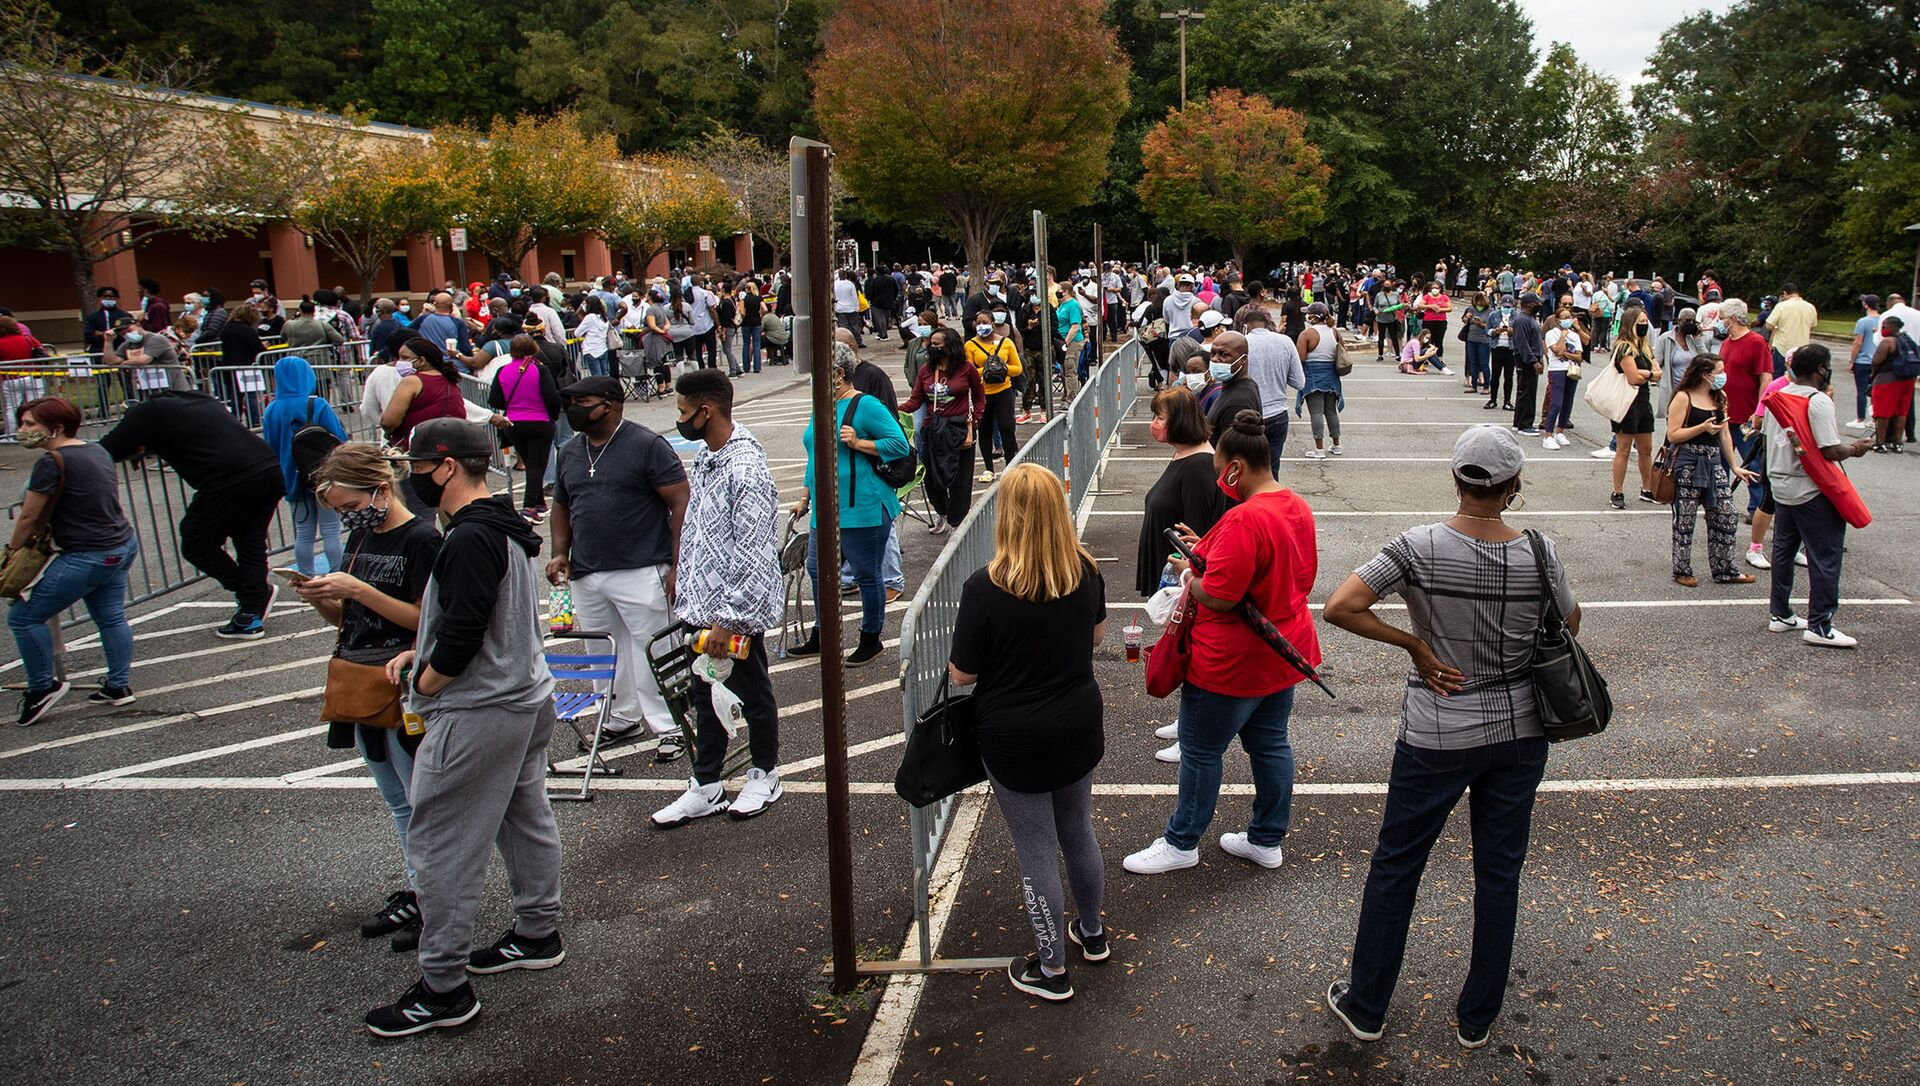 Hundreds of people wait in line for early voting on Monday, Oct. 12, 2020, in Marietta, Georgia - Sputnik International, 1920, 29.03.2021